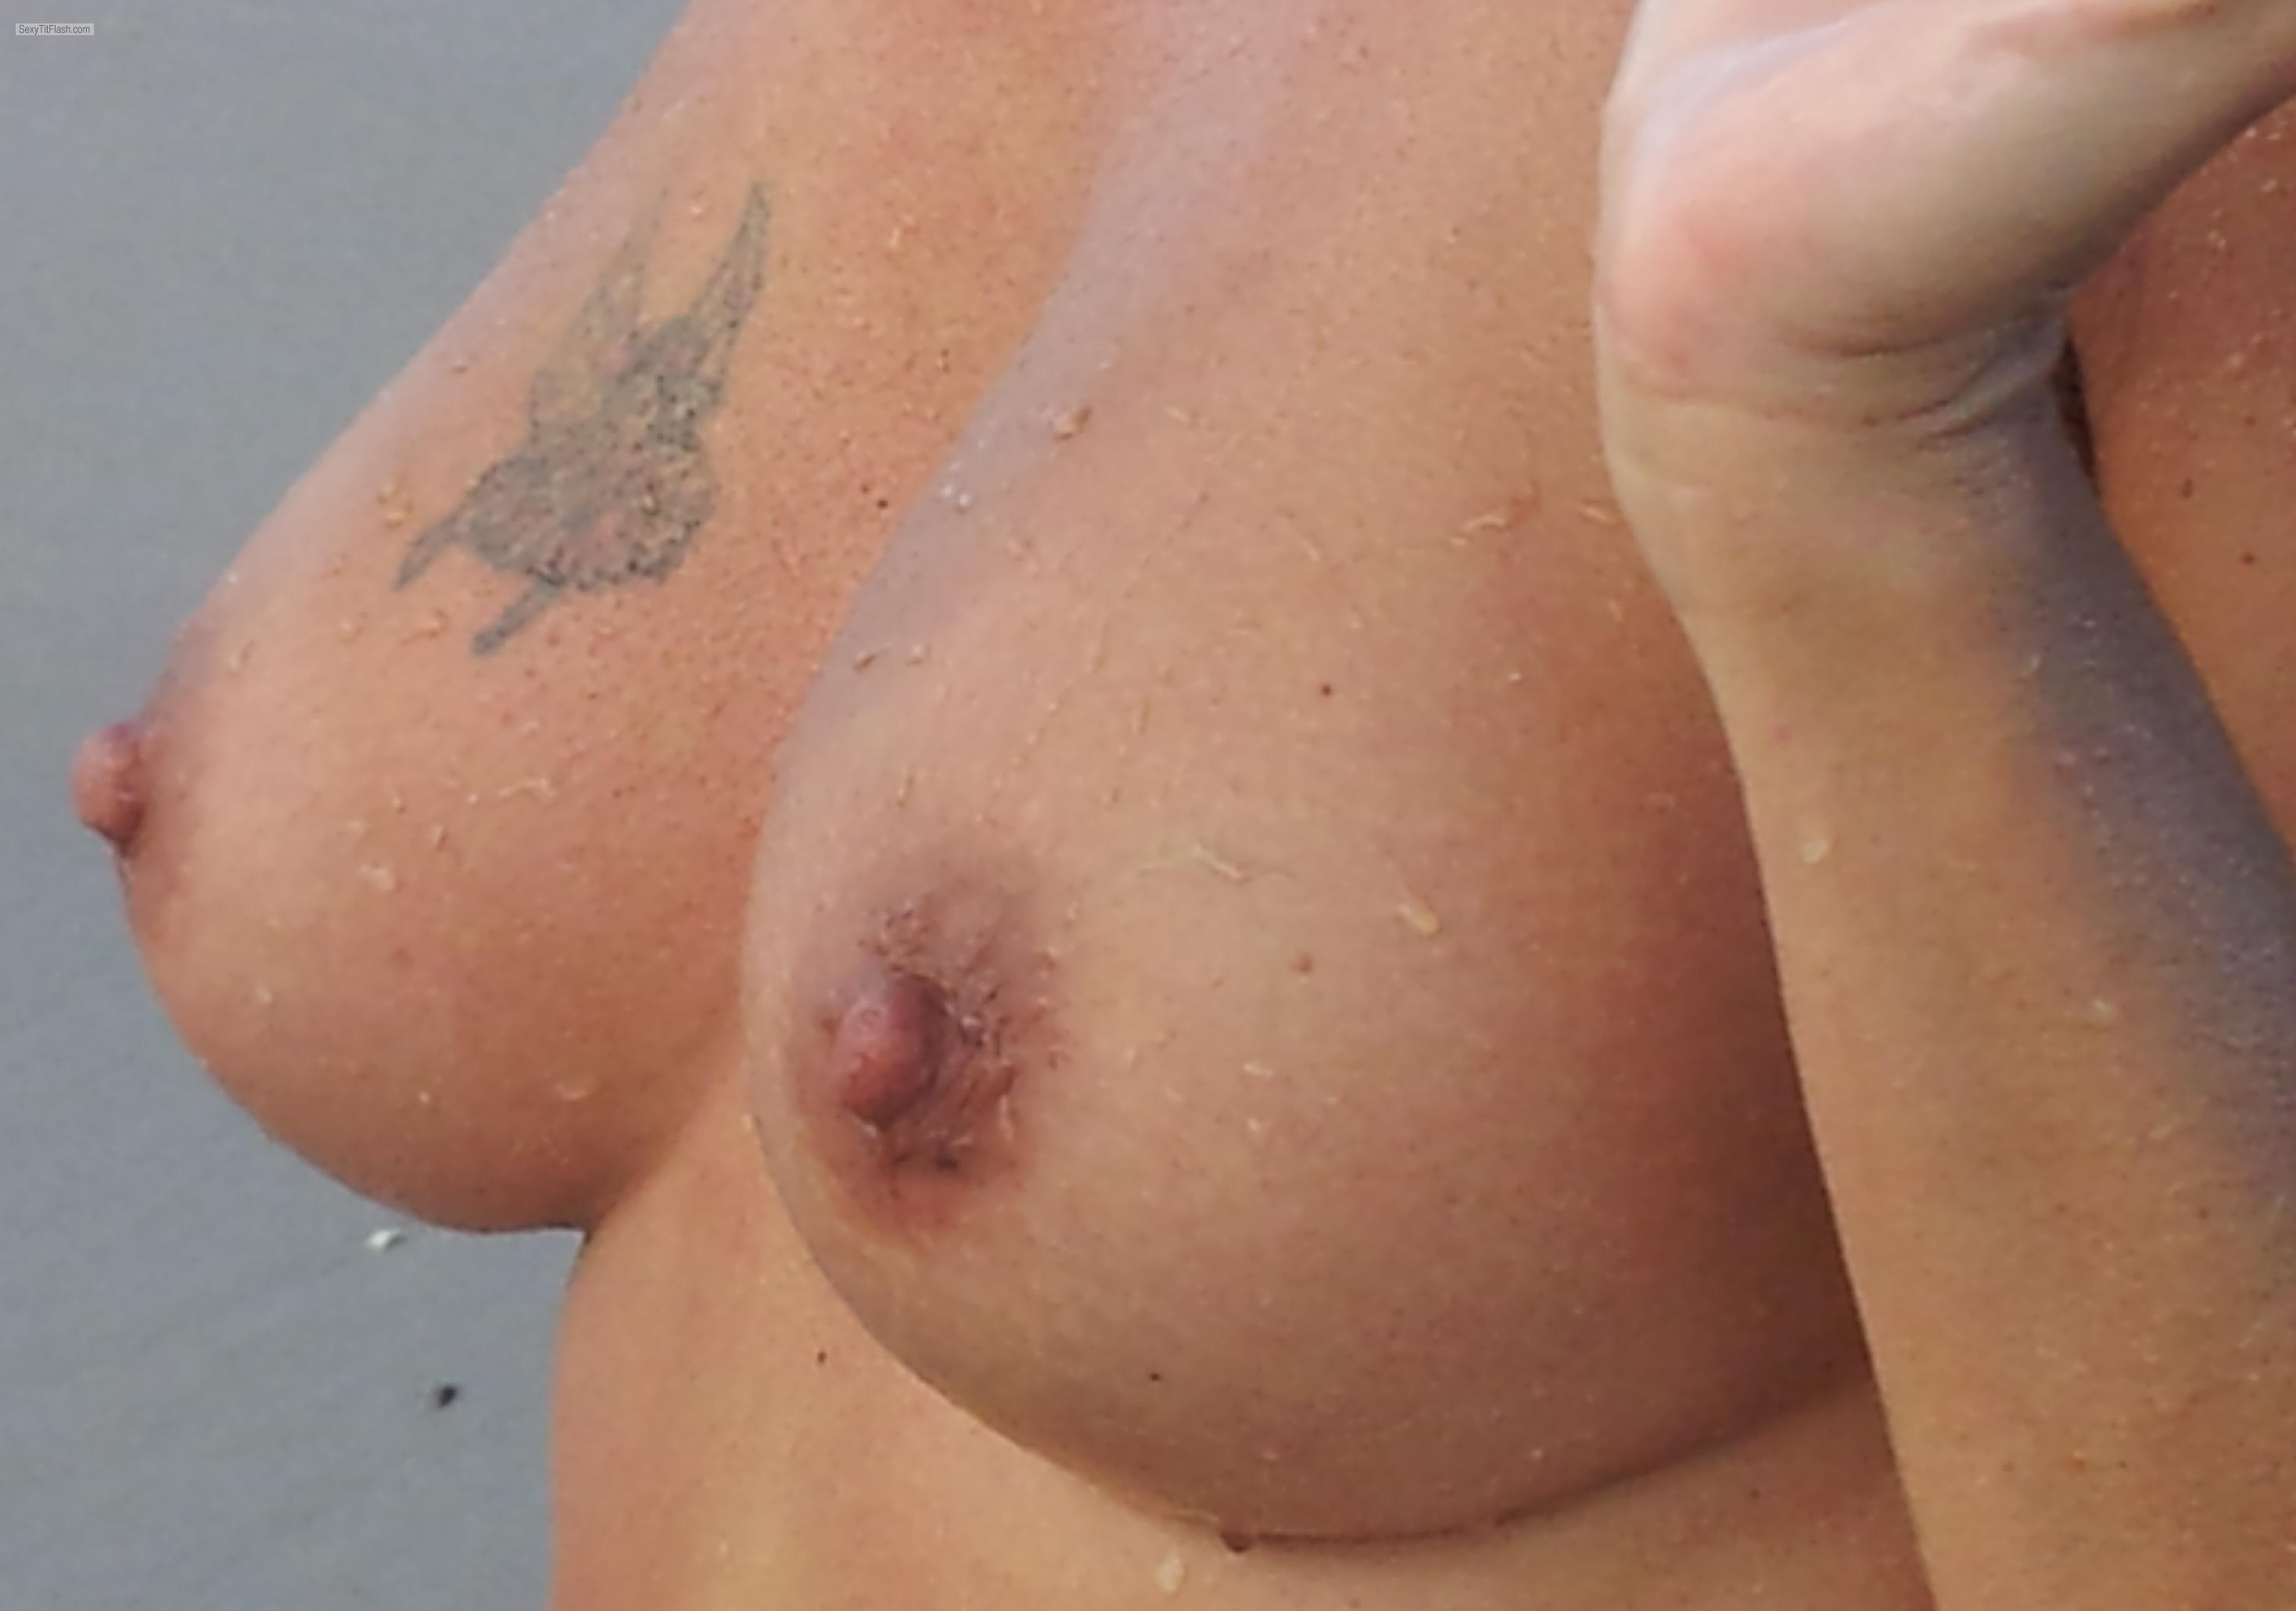 Medium Tits Of My Wife 24florida /